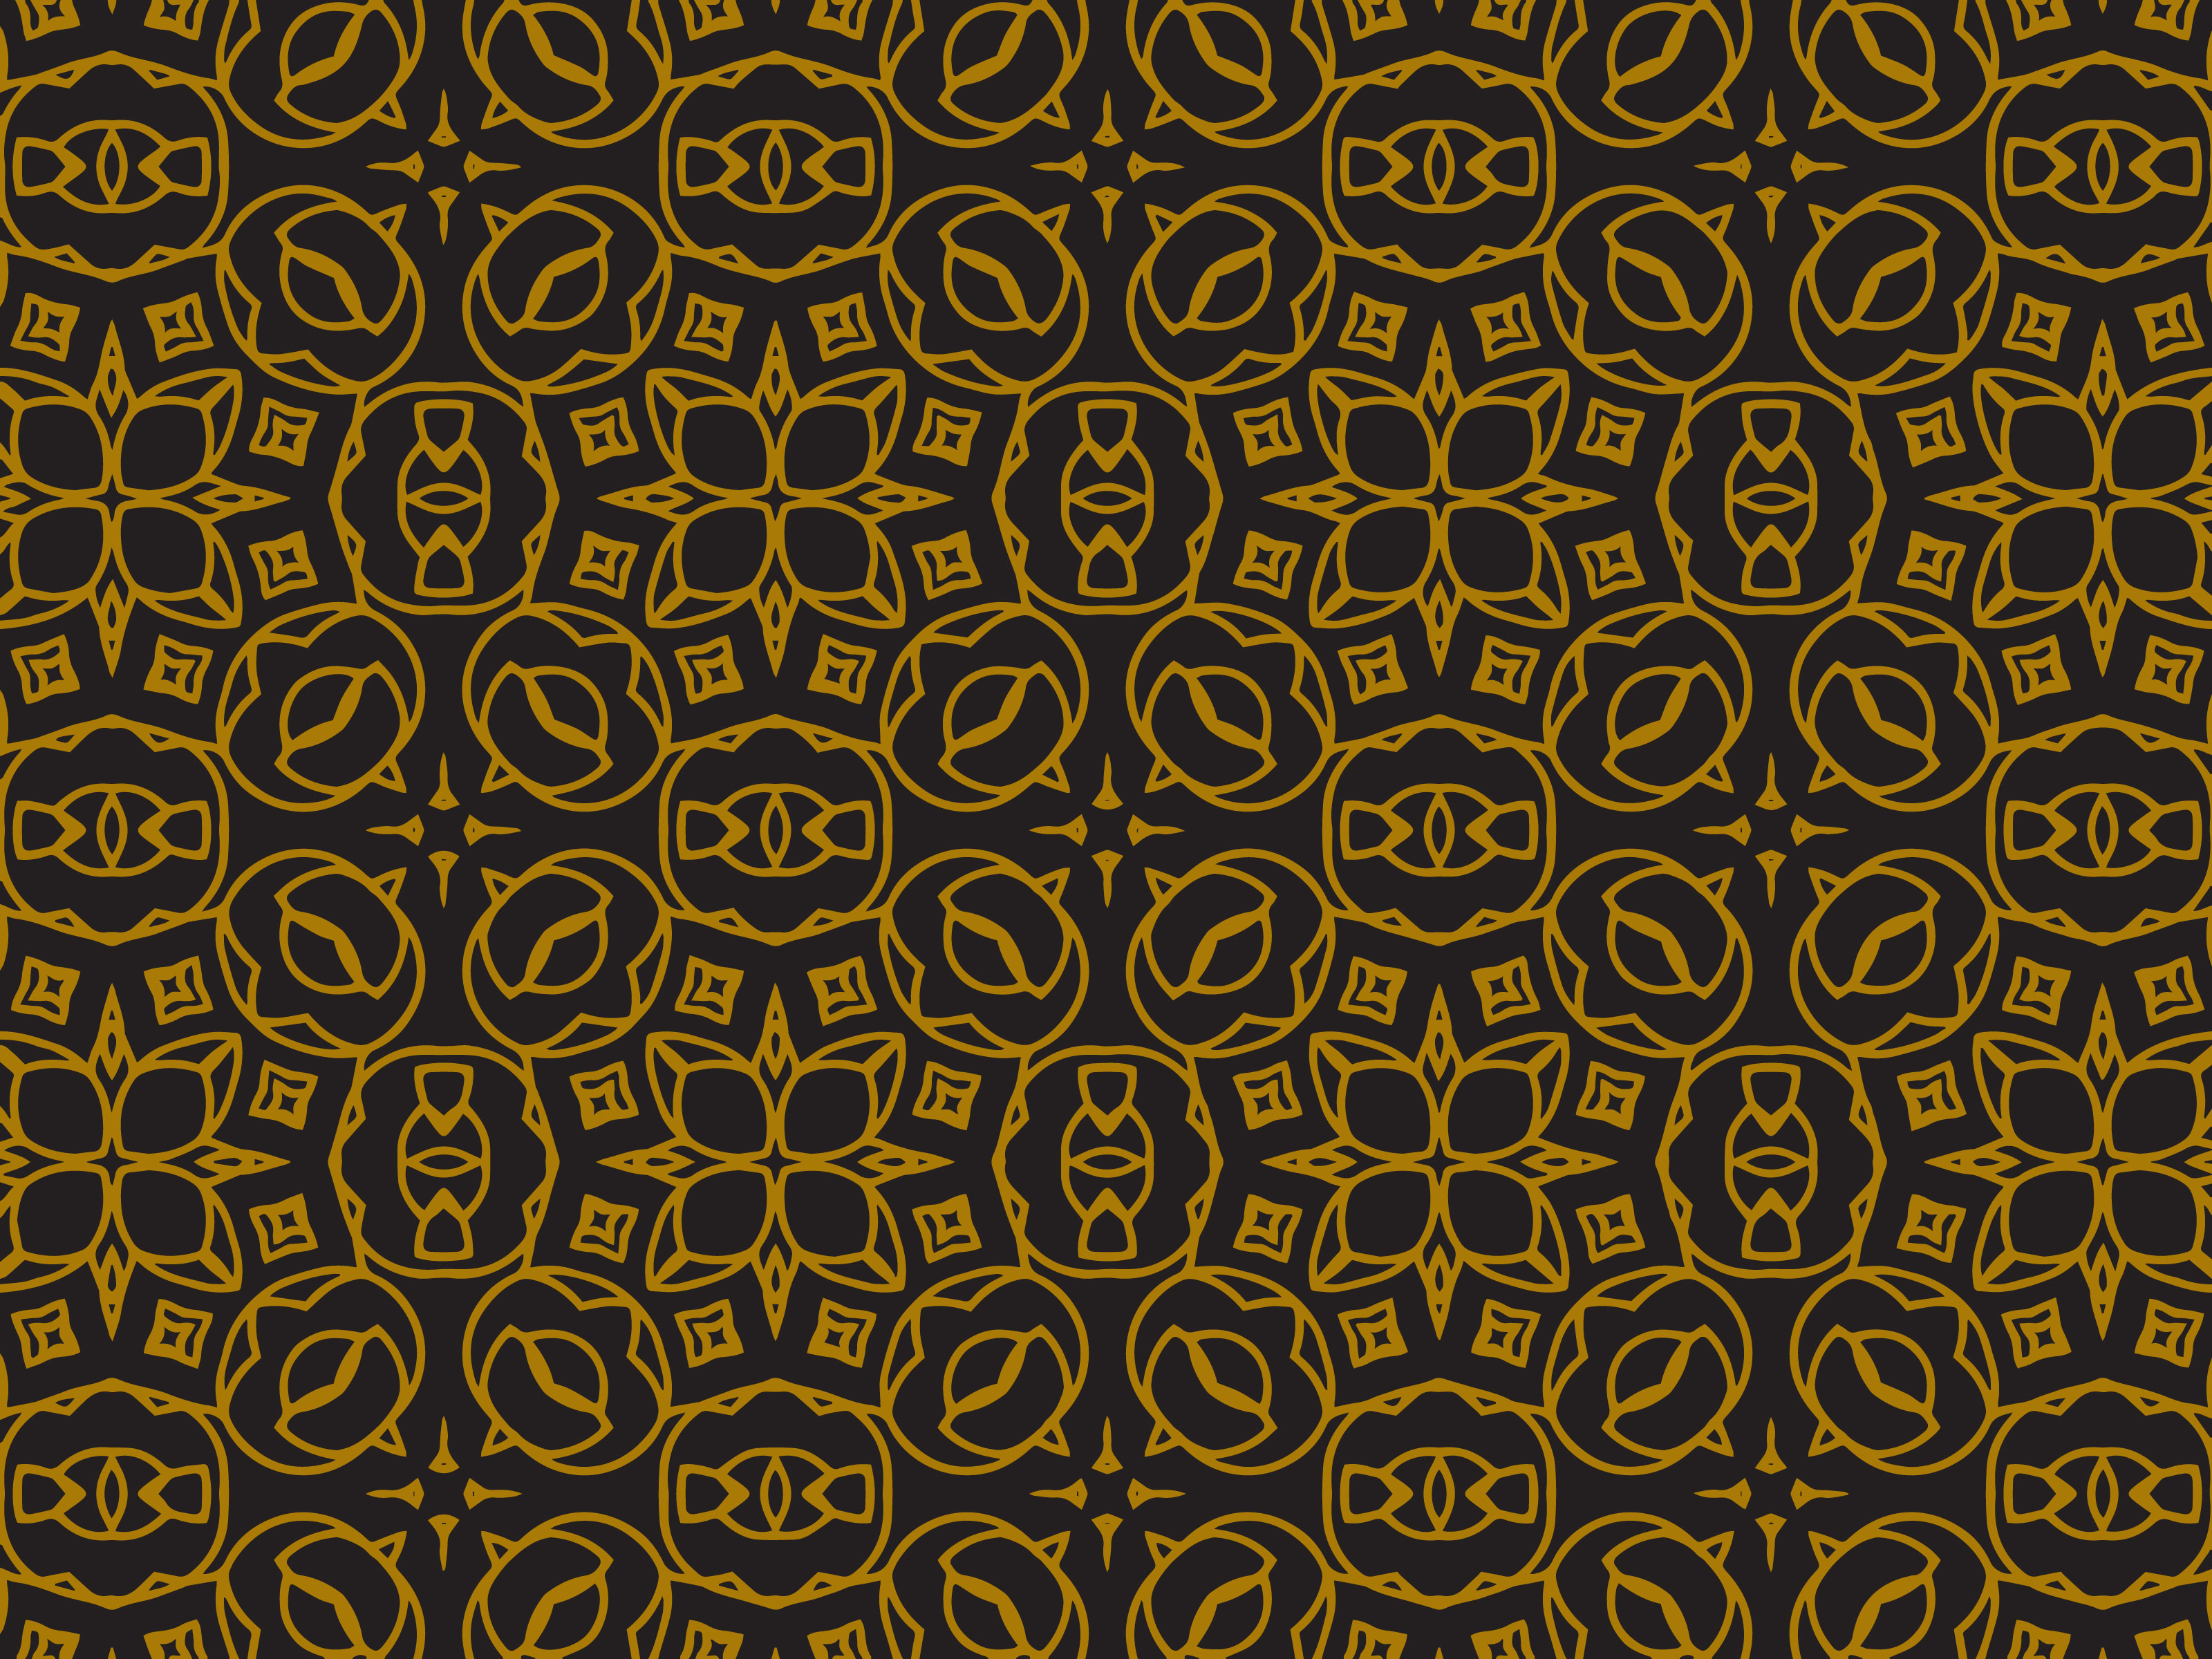 Download Free Pattern Gold Square Ornaments Graphic By Silkymilkycreative for Cricut Explore, Silhouette and other cutting machines.